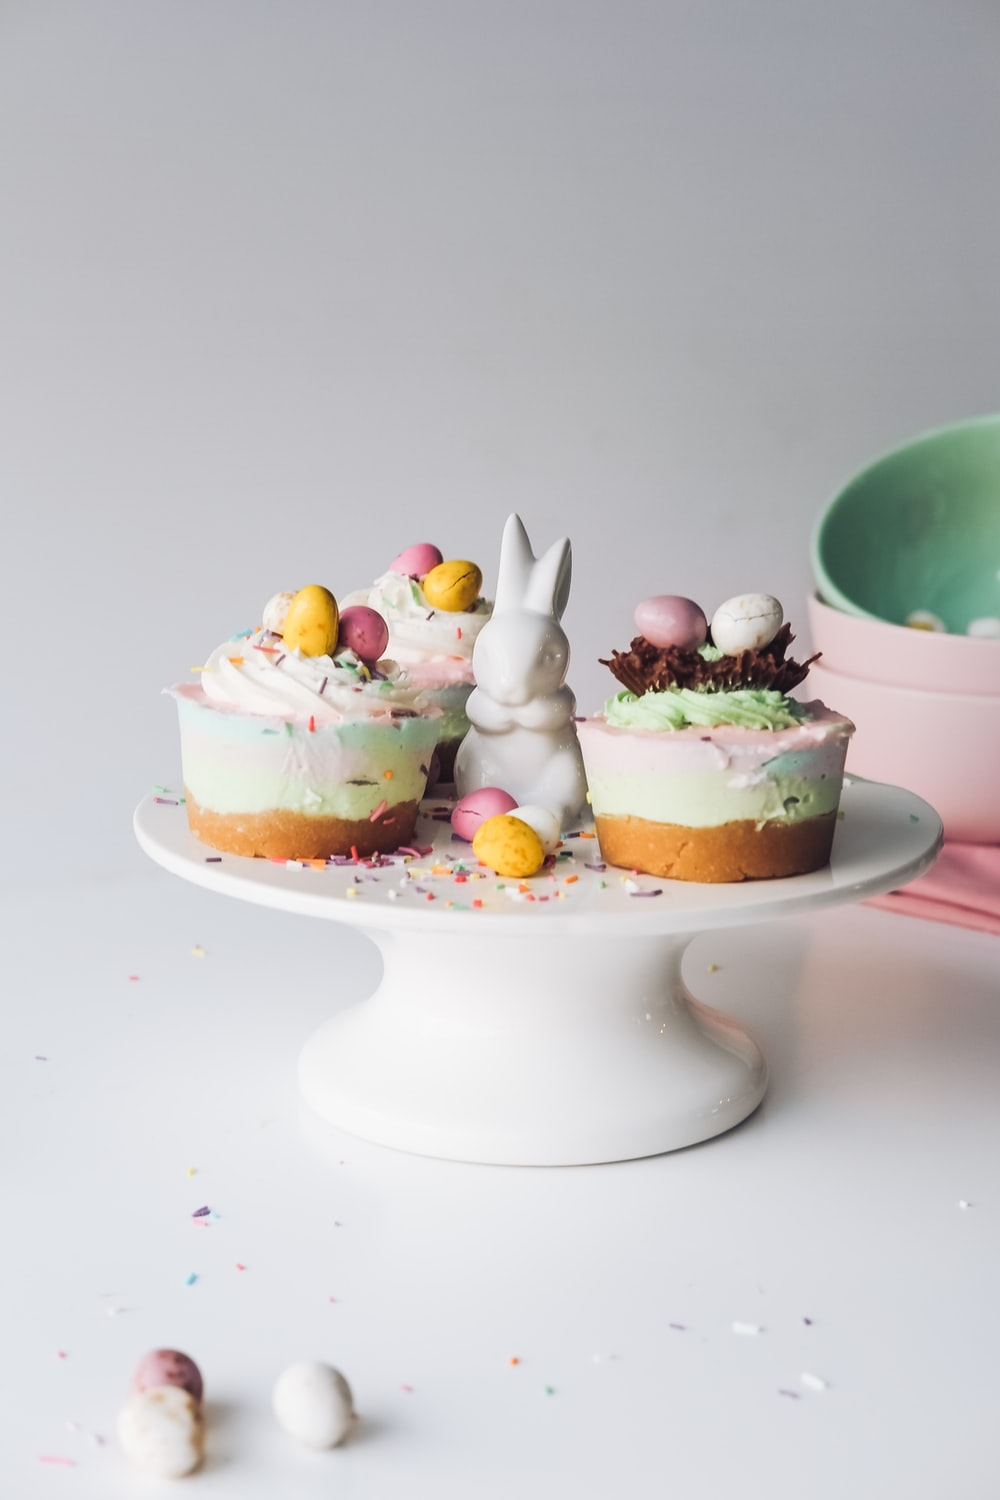 500 Easter Pictures 2020 Download Free Images On Unsplash